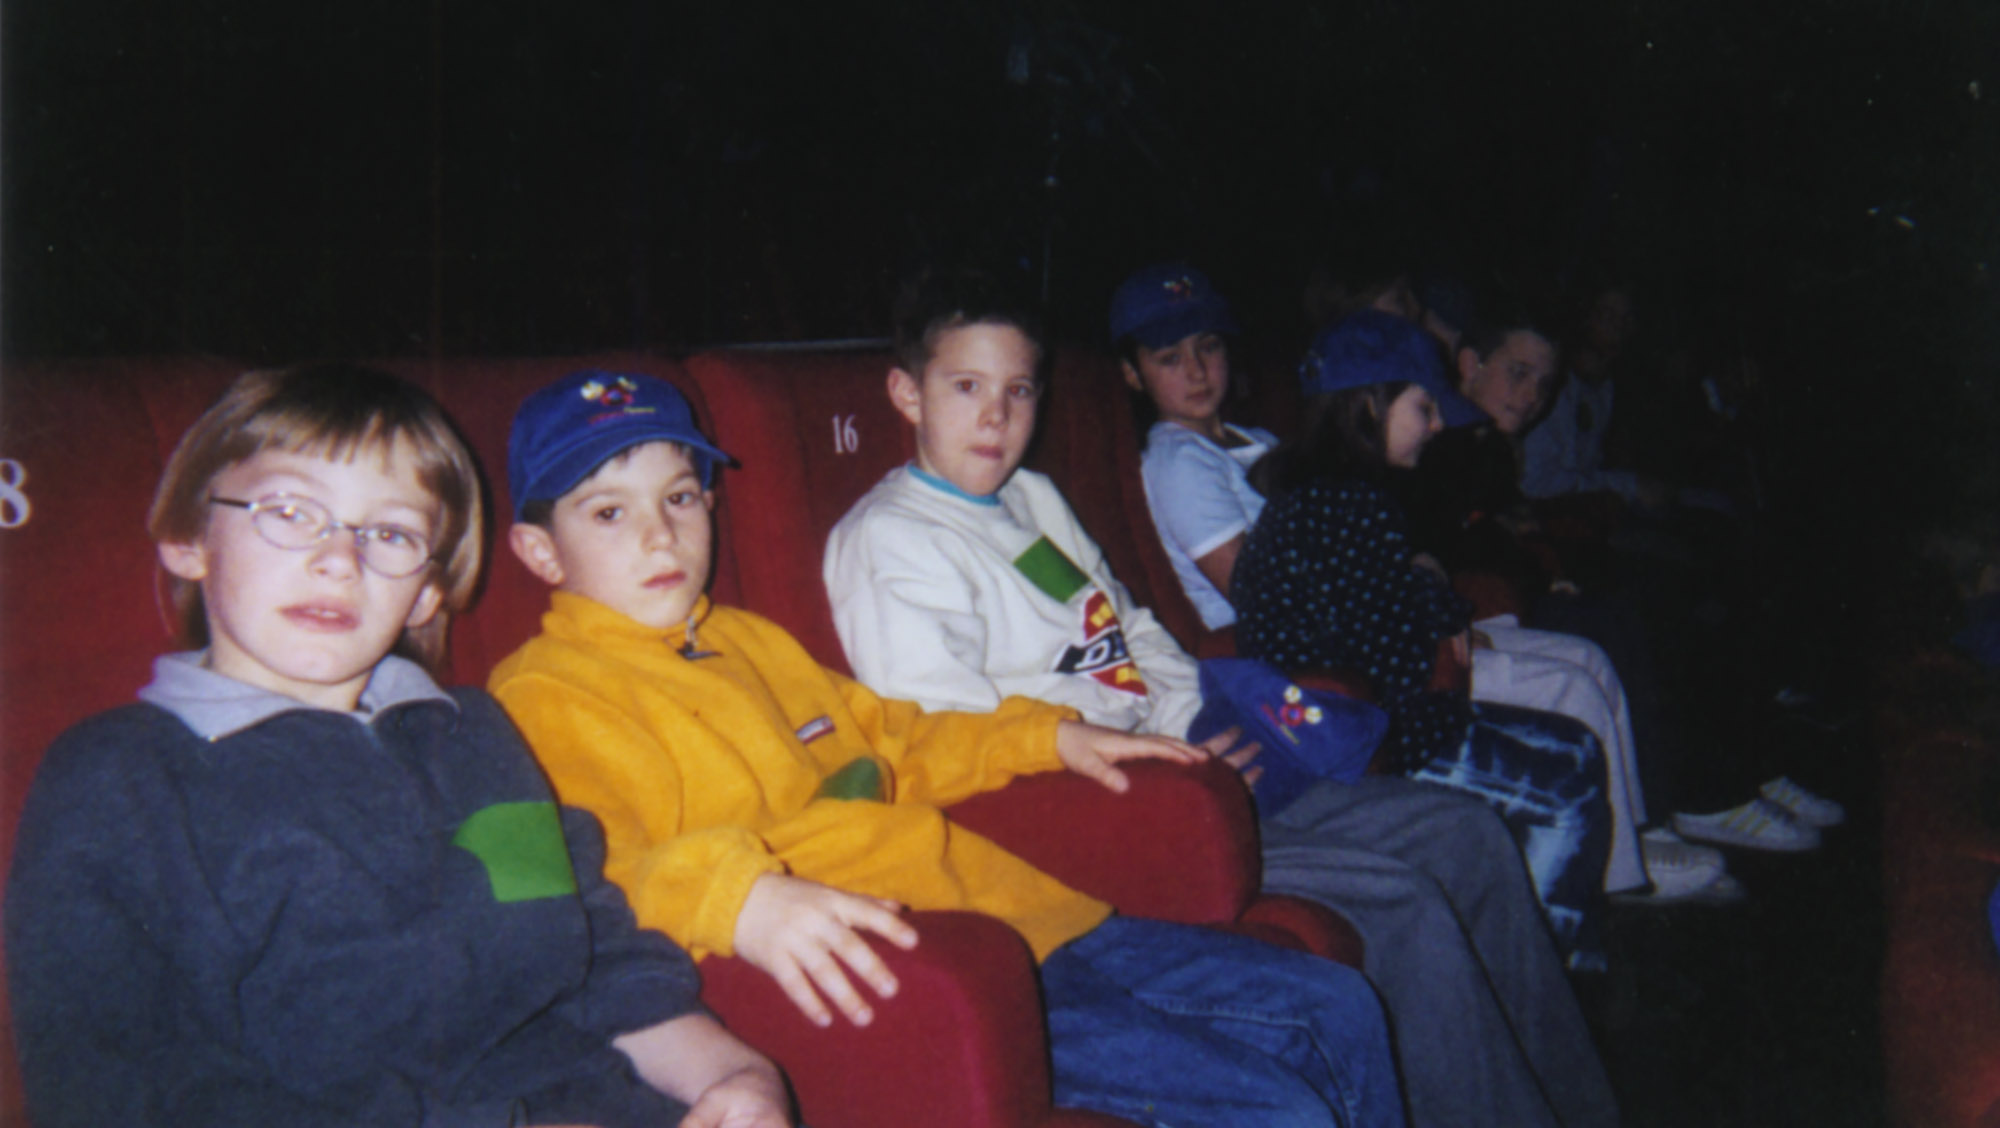 Kinder in Kino 2000